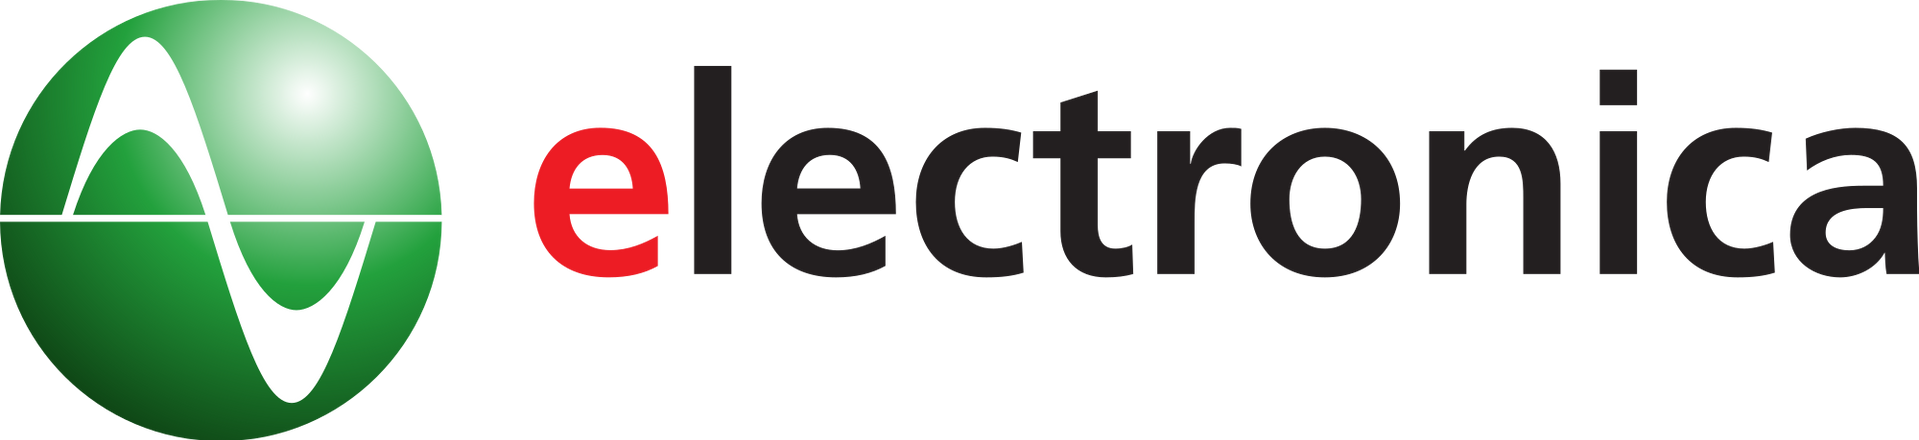 2000px-Electronica_(Messe)_Logo.svg.png